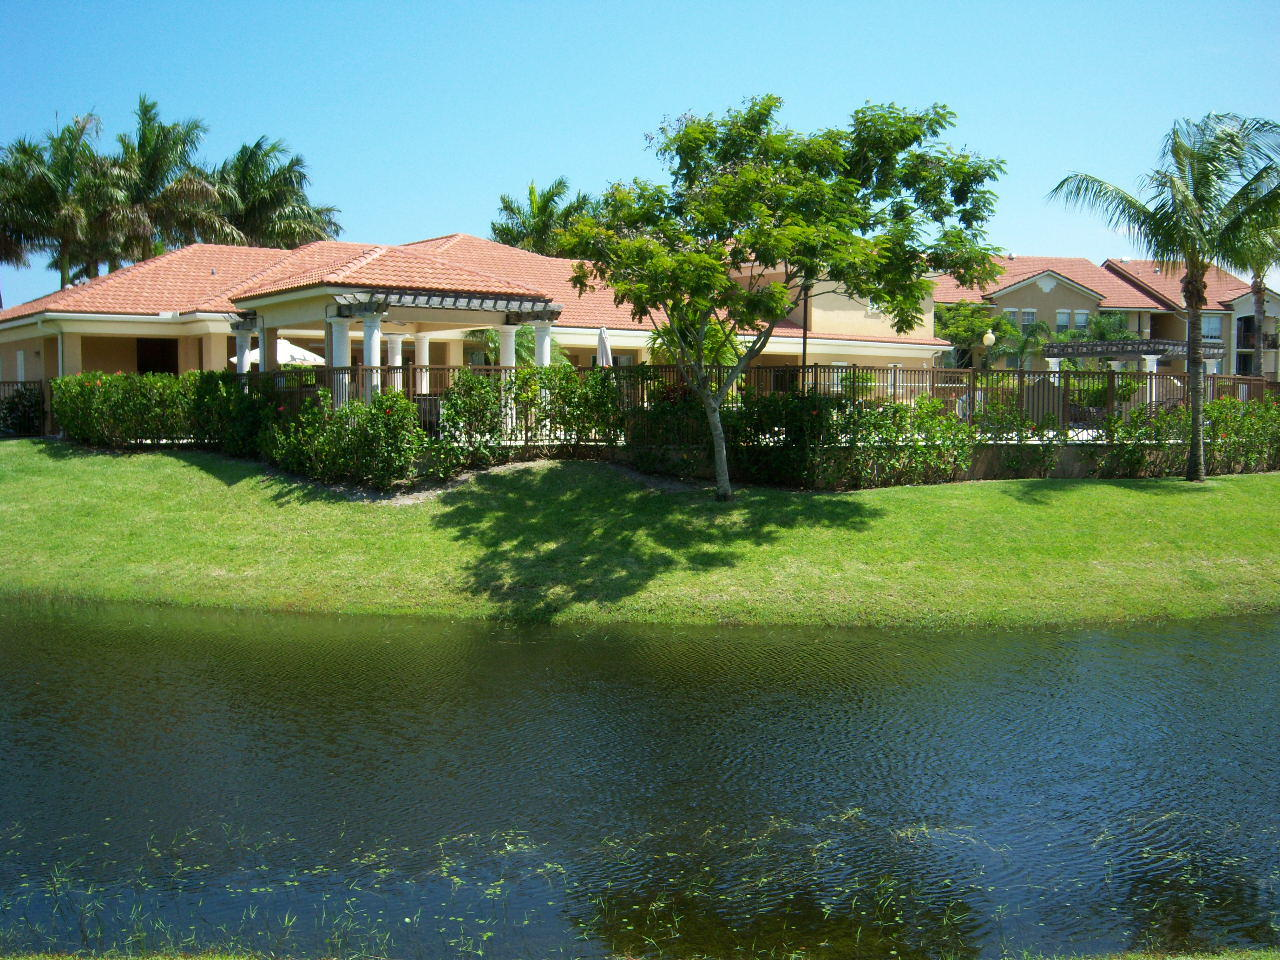 Home for sale in Mirabella Villas Boynton Beach Florida